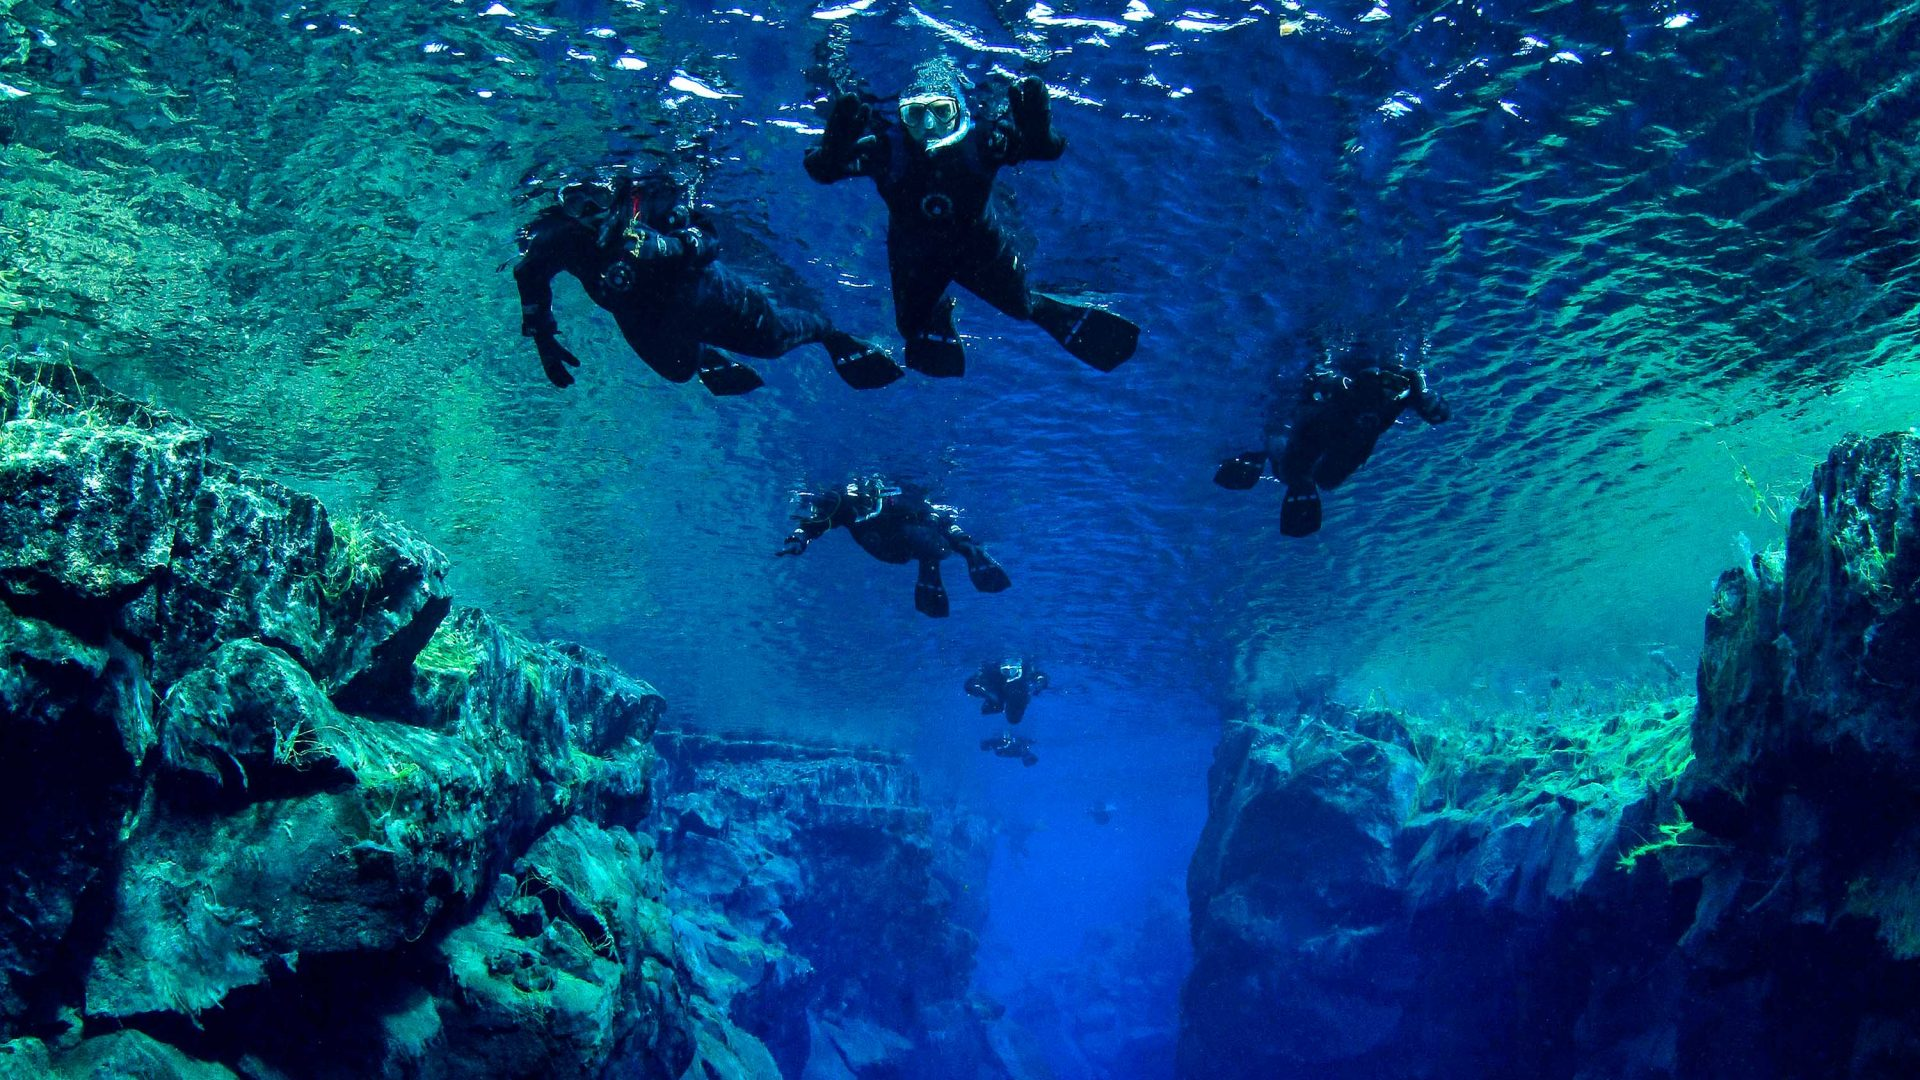 Scuba divers in Iceland Thingvallavatn Lake